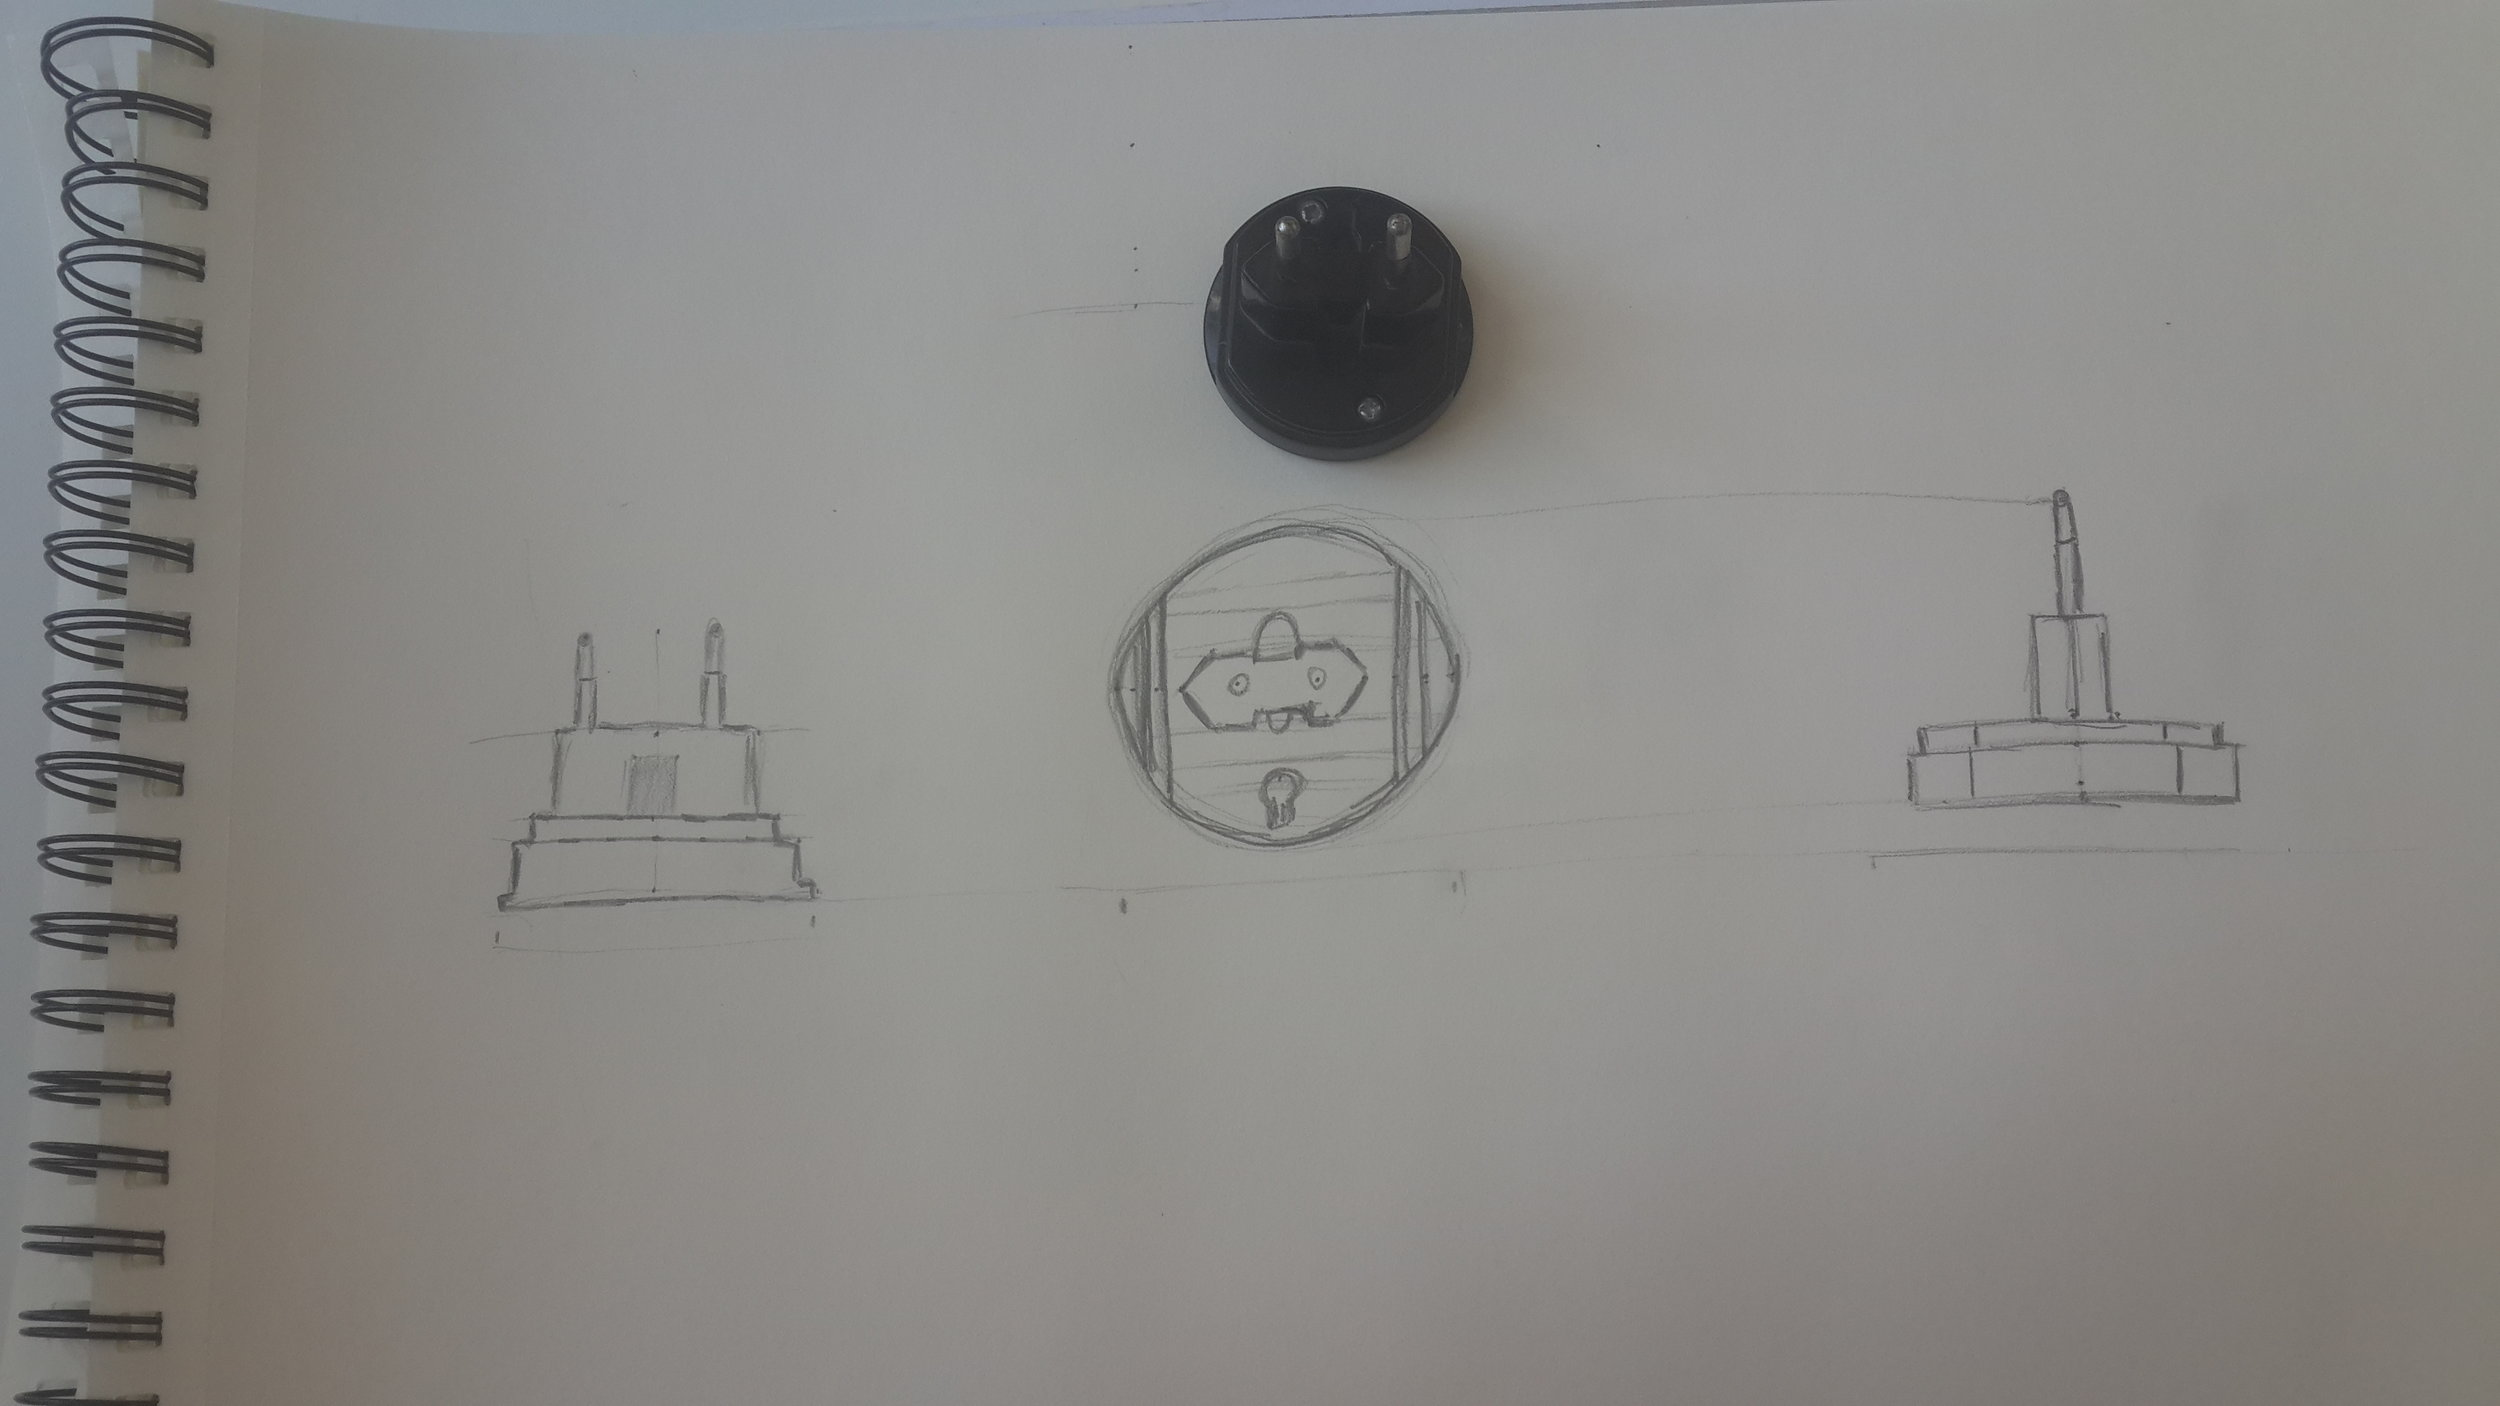 Technical Sketch of an Electrical Plug